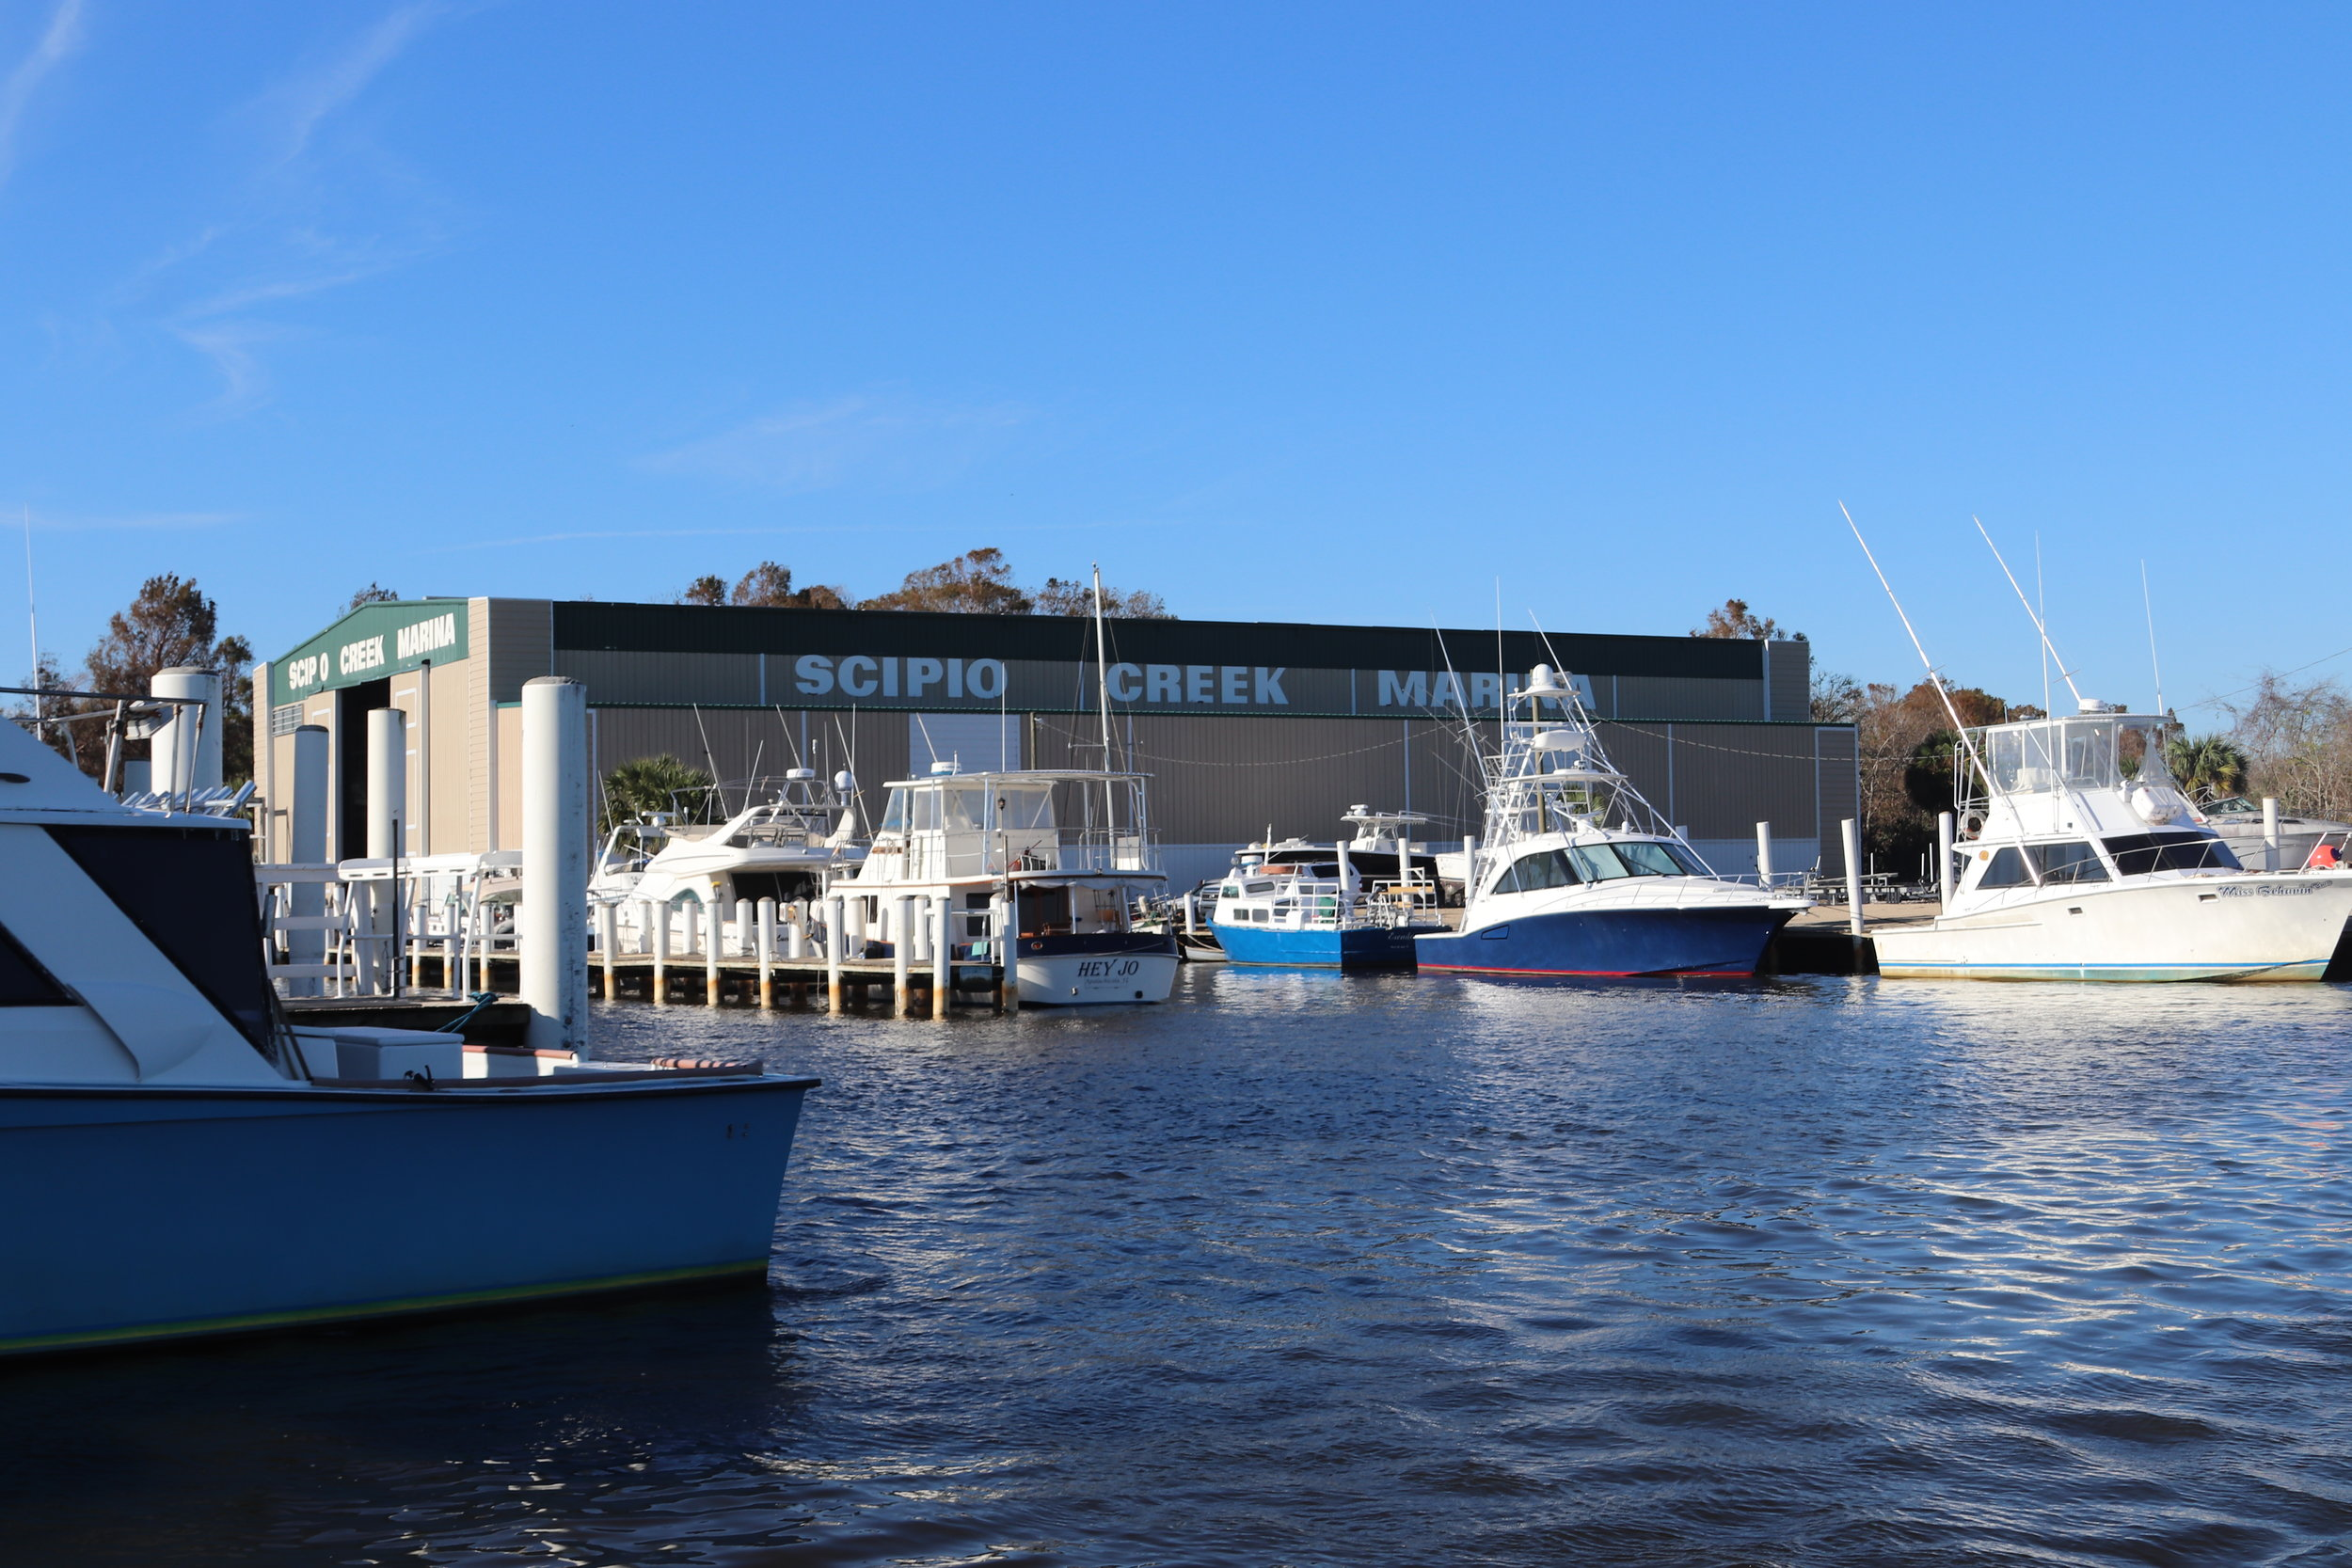 Scipio Creek Marina, Apalachicola … looks pretty good from this angle